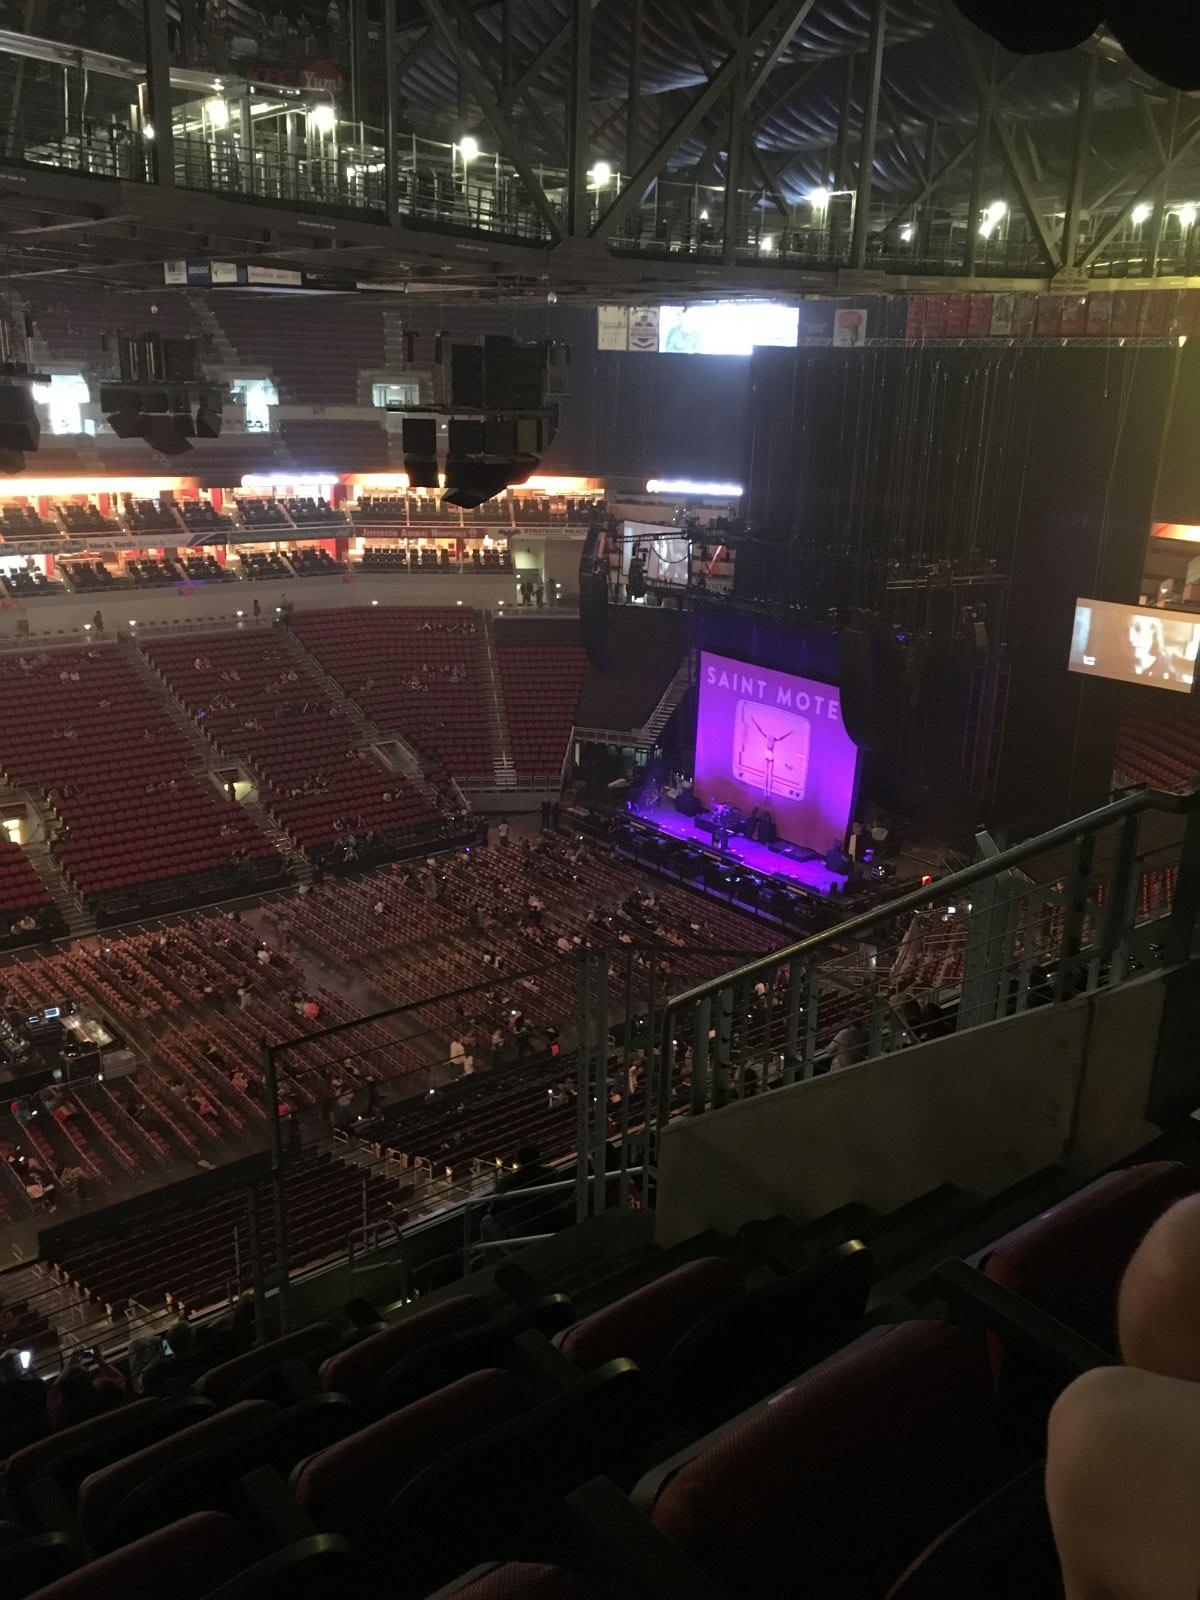 Section 310 seat view